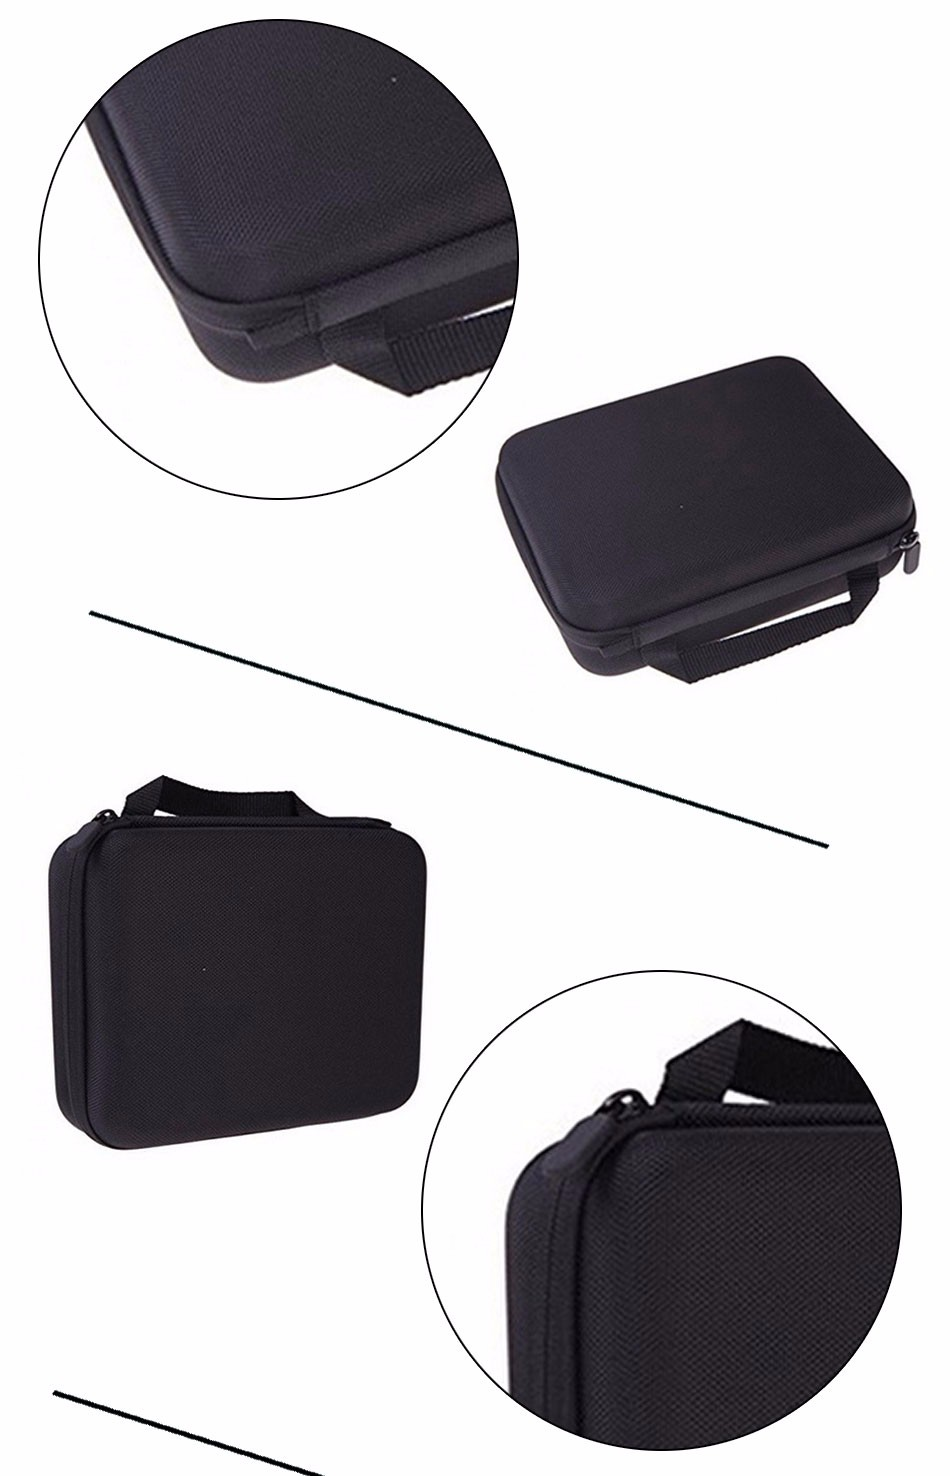 Middle Size Collection Box Case Bag Ride Storage Bag For Xiaomi Yi Gopro Hero4 Sjcam Sj4000 Action Camera/Video Bags Accessories